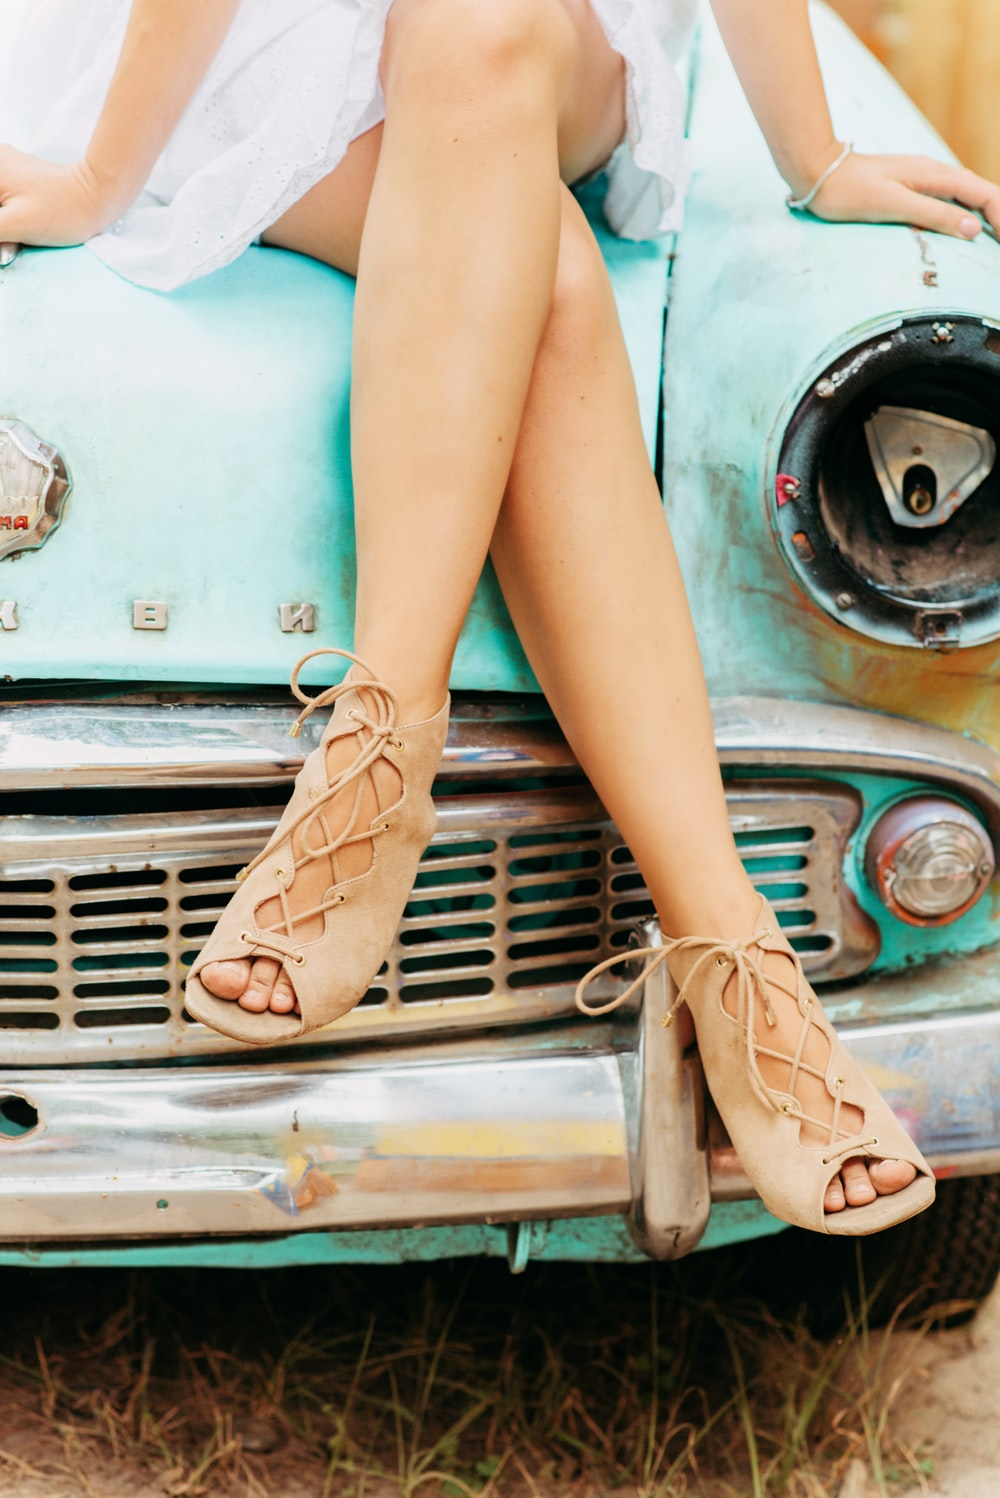 woman in pink leather shoes sitting on teal car